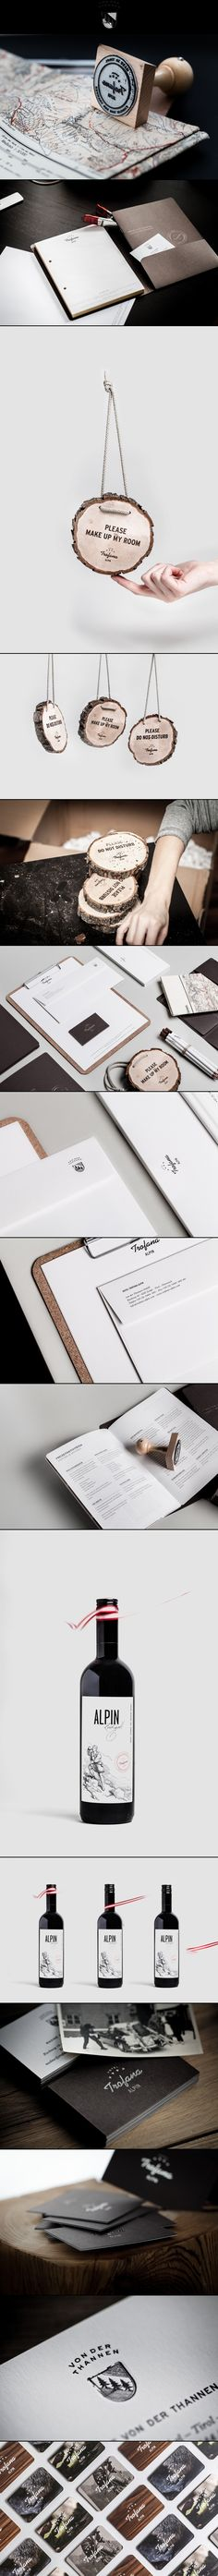 Trofana hotel - via behance #identity #packaging #branding PD